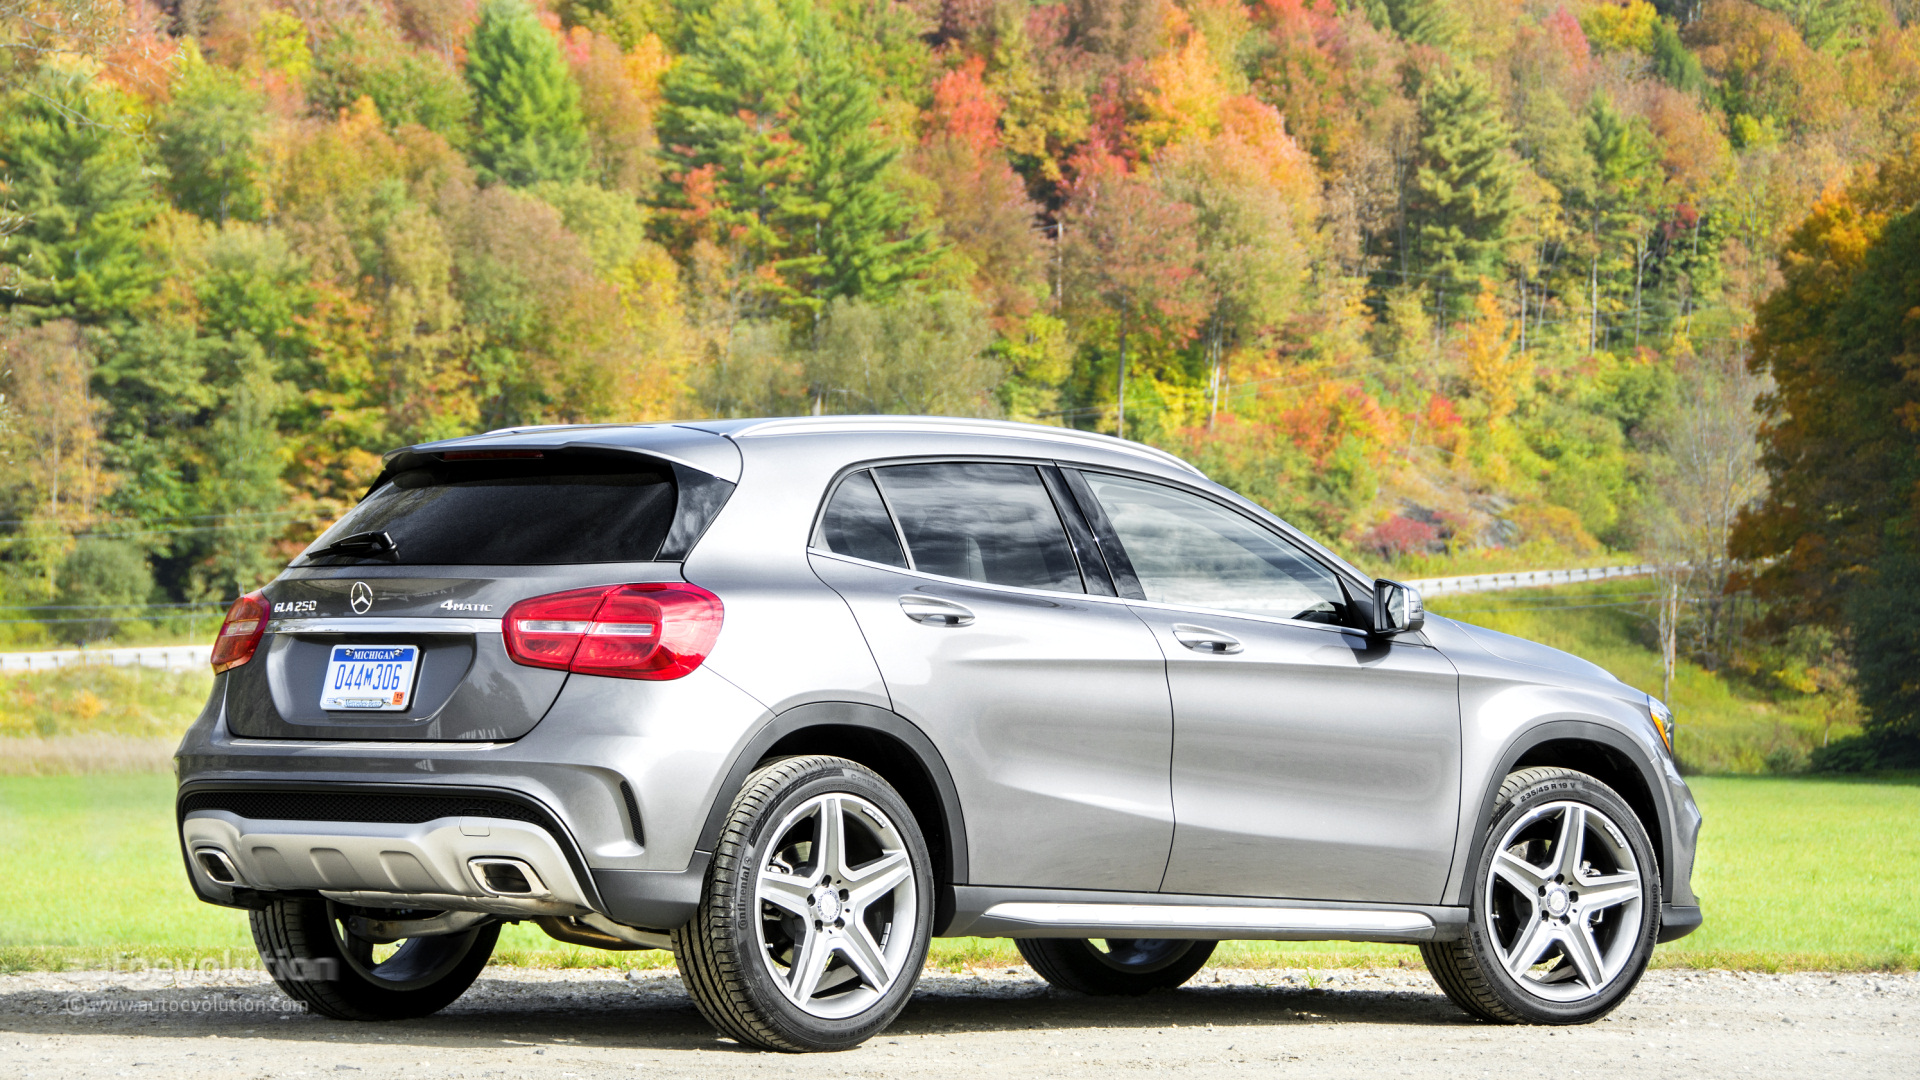 2015 mercedes benz gla250 4matic hd wallpapers autoevolution for 2015 mercedes benz gla250 4matic for sale